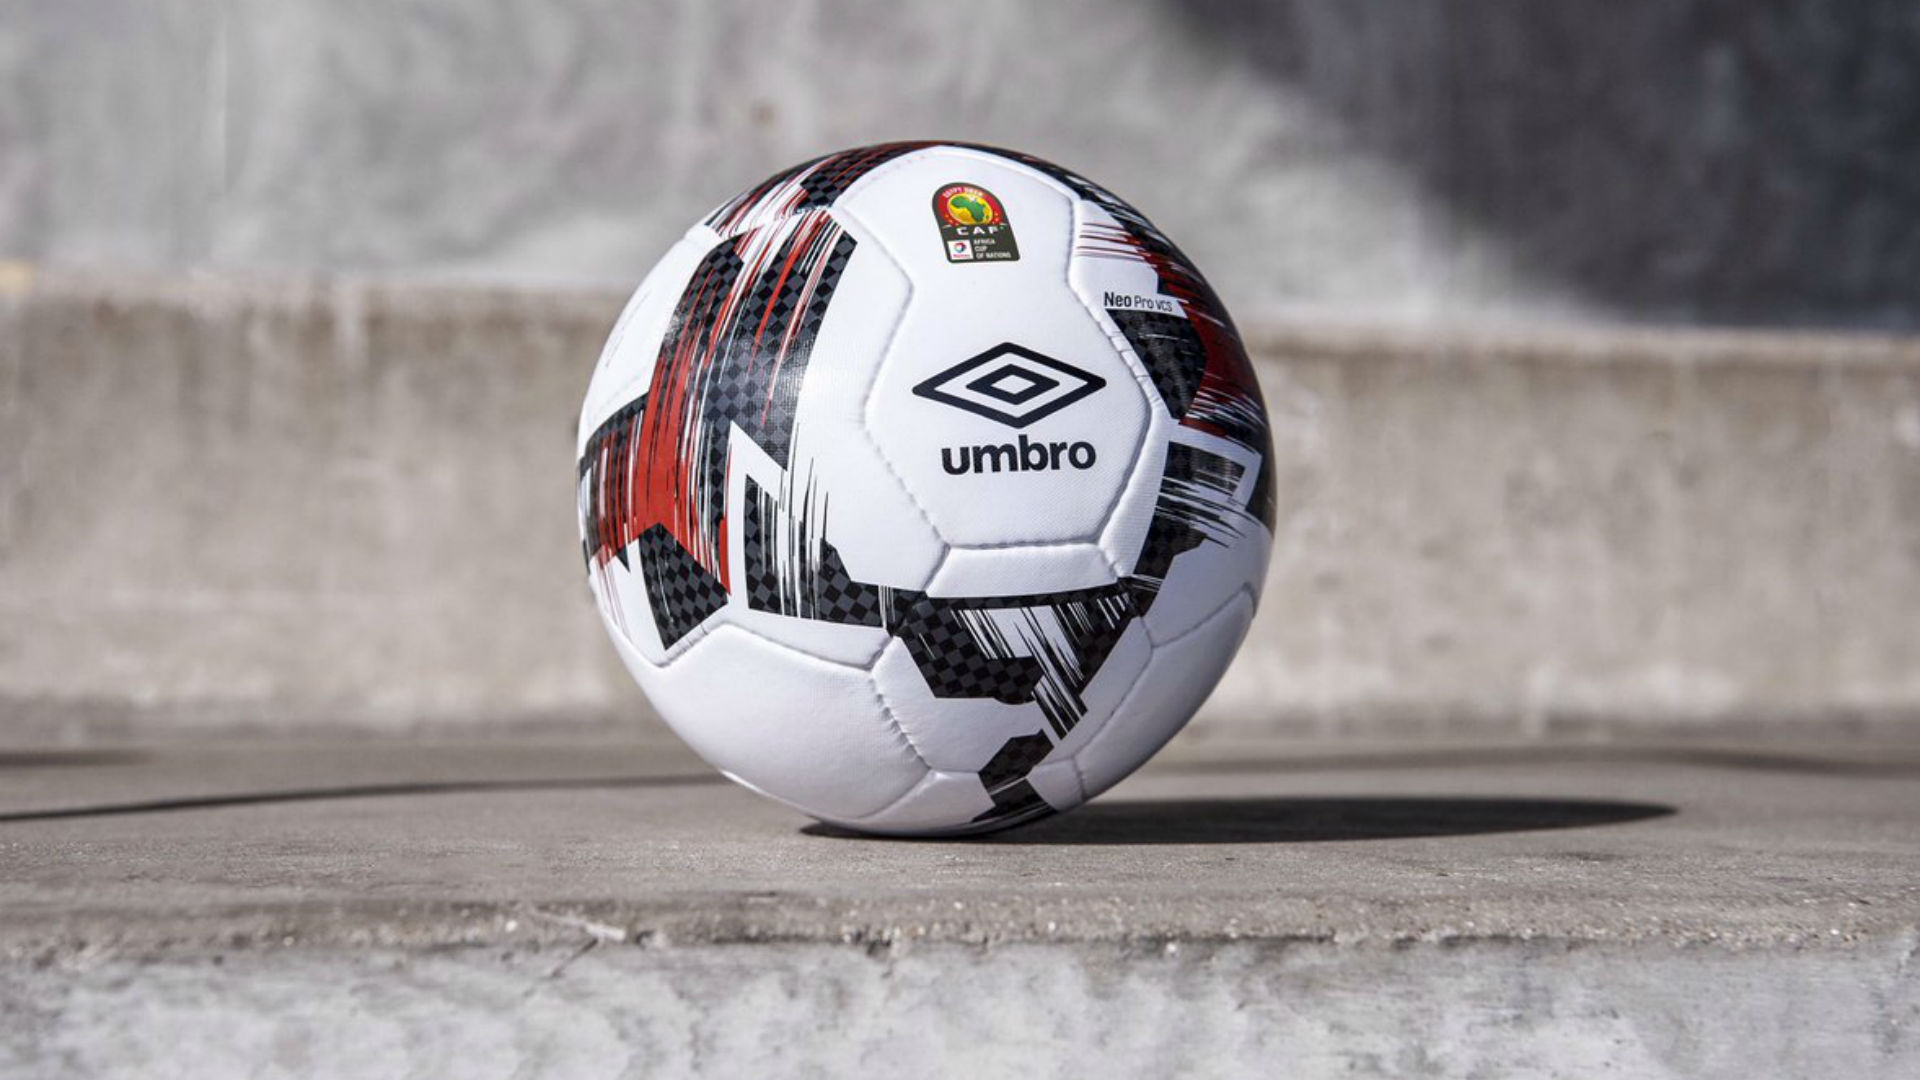 Afcon 2019 official ball